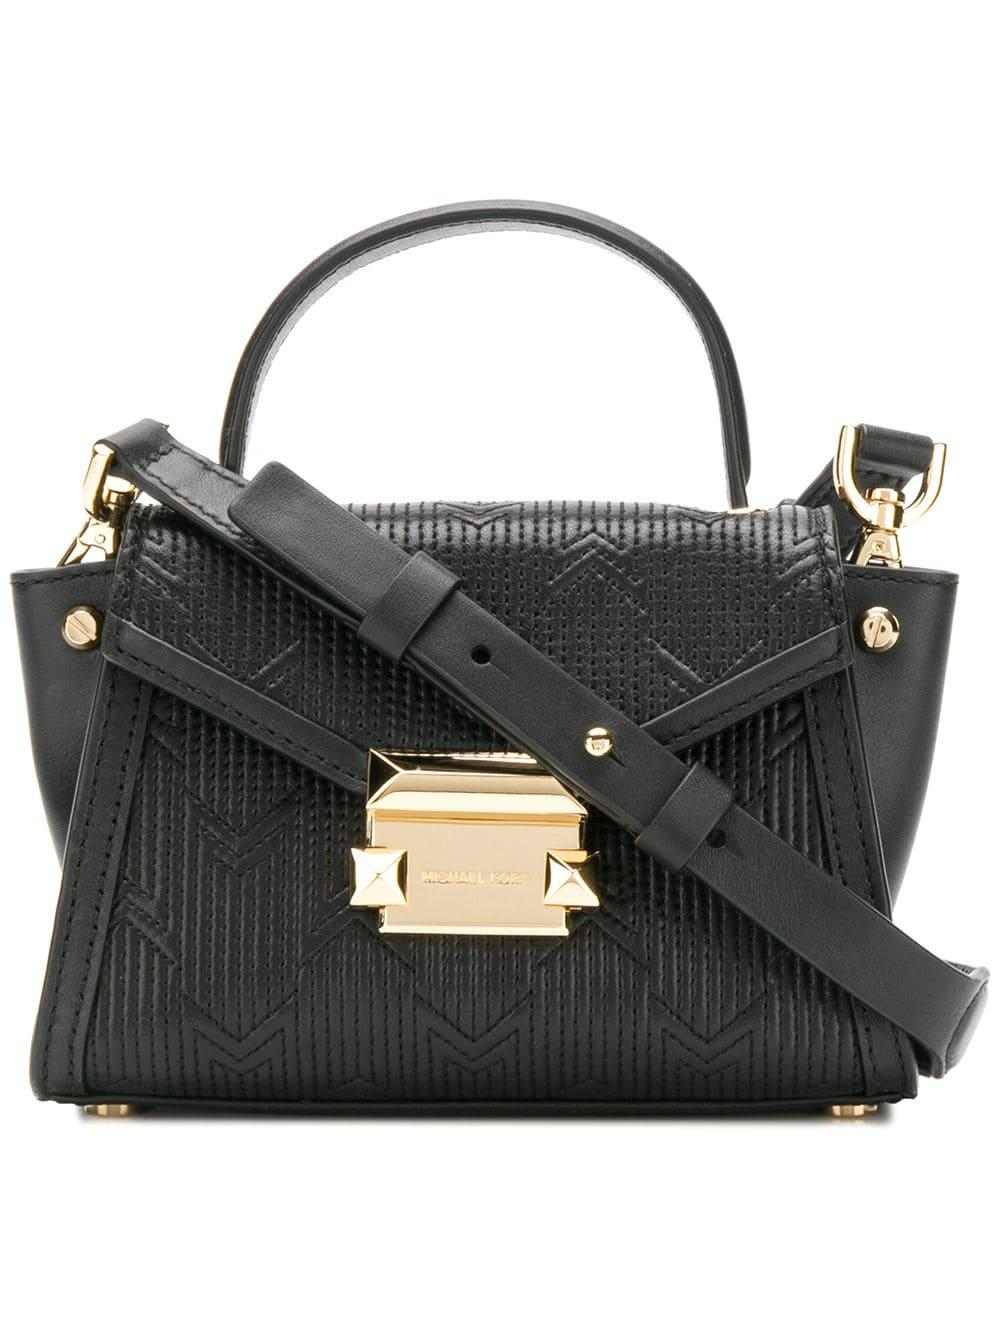 f7c2c0a7641a24 Michael Kors Whitney Mini Deco Quilted Leather Satchel in Black ...